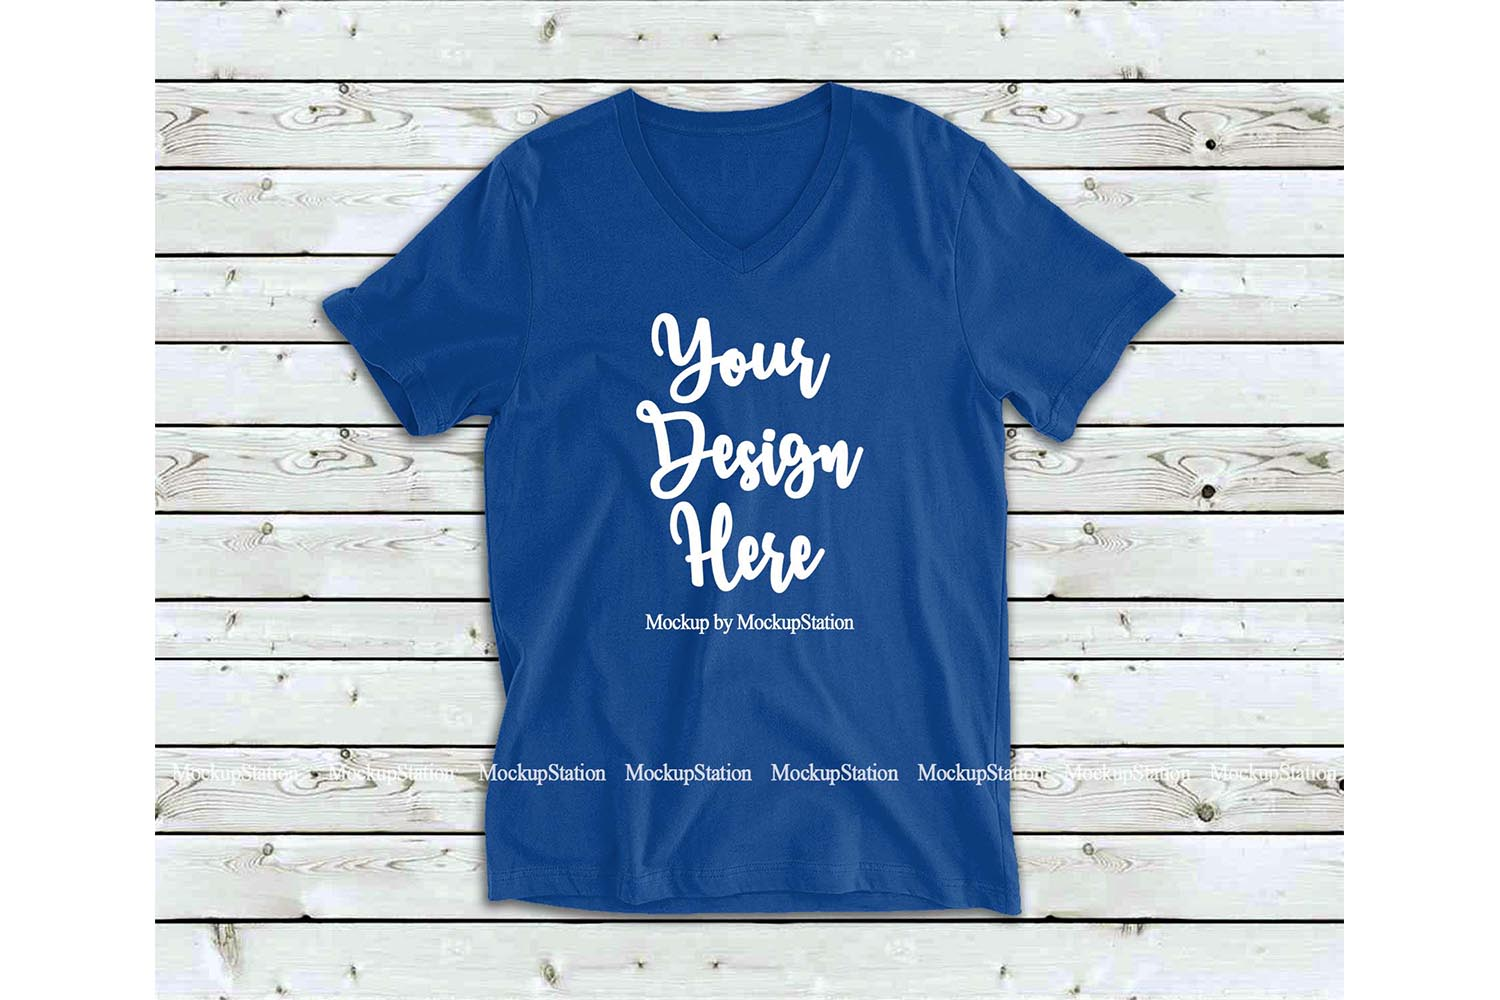 Royal Blue Shirt Mock Up, Bella Canvas 3005 V-Neck Tshirt example image 1